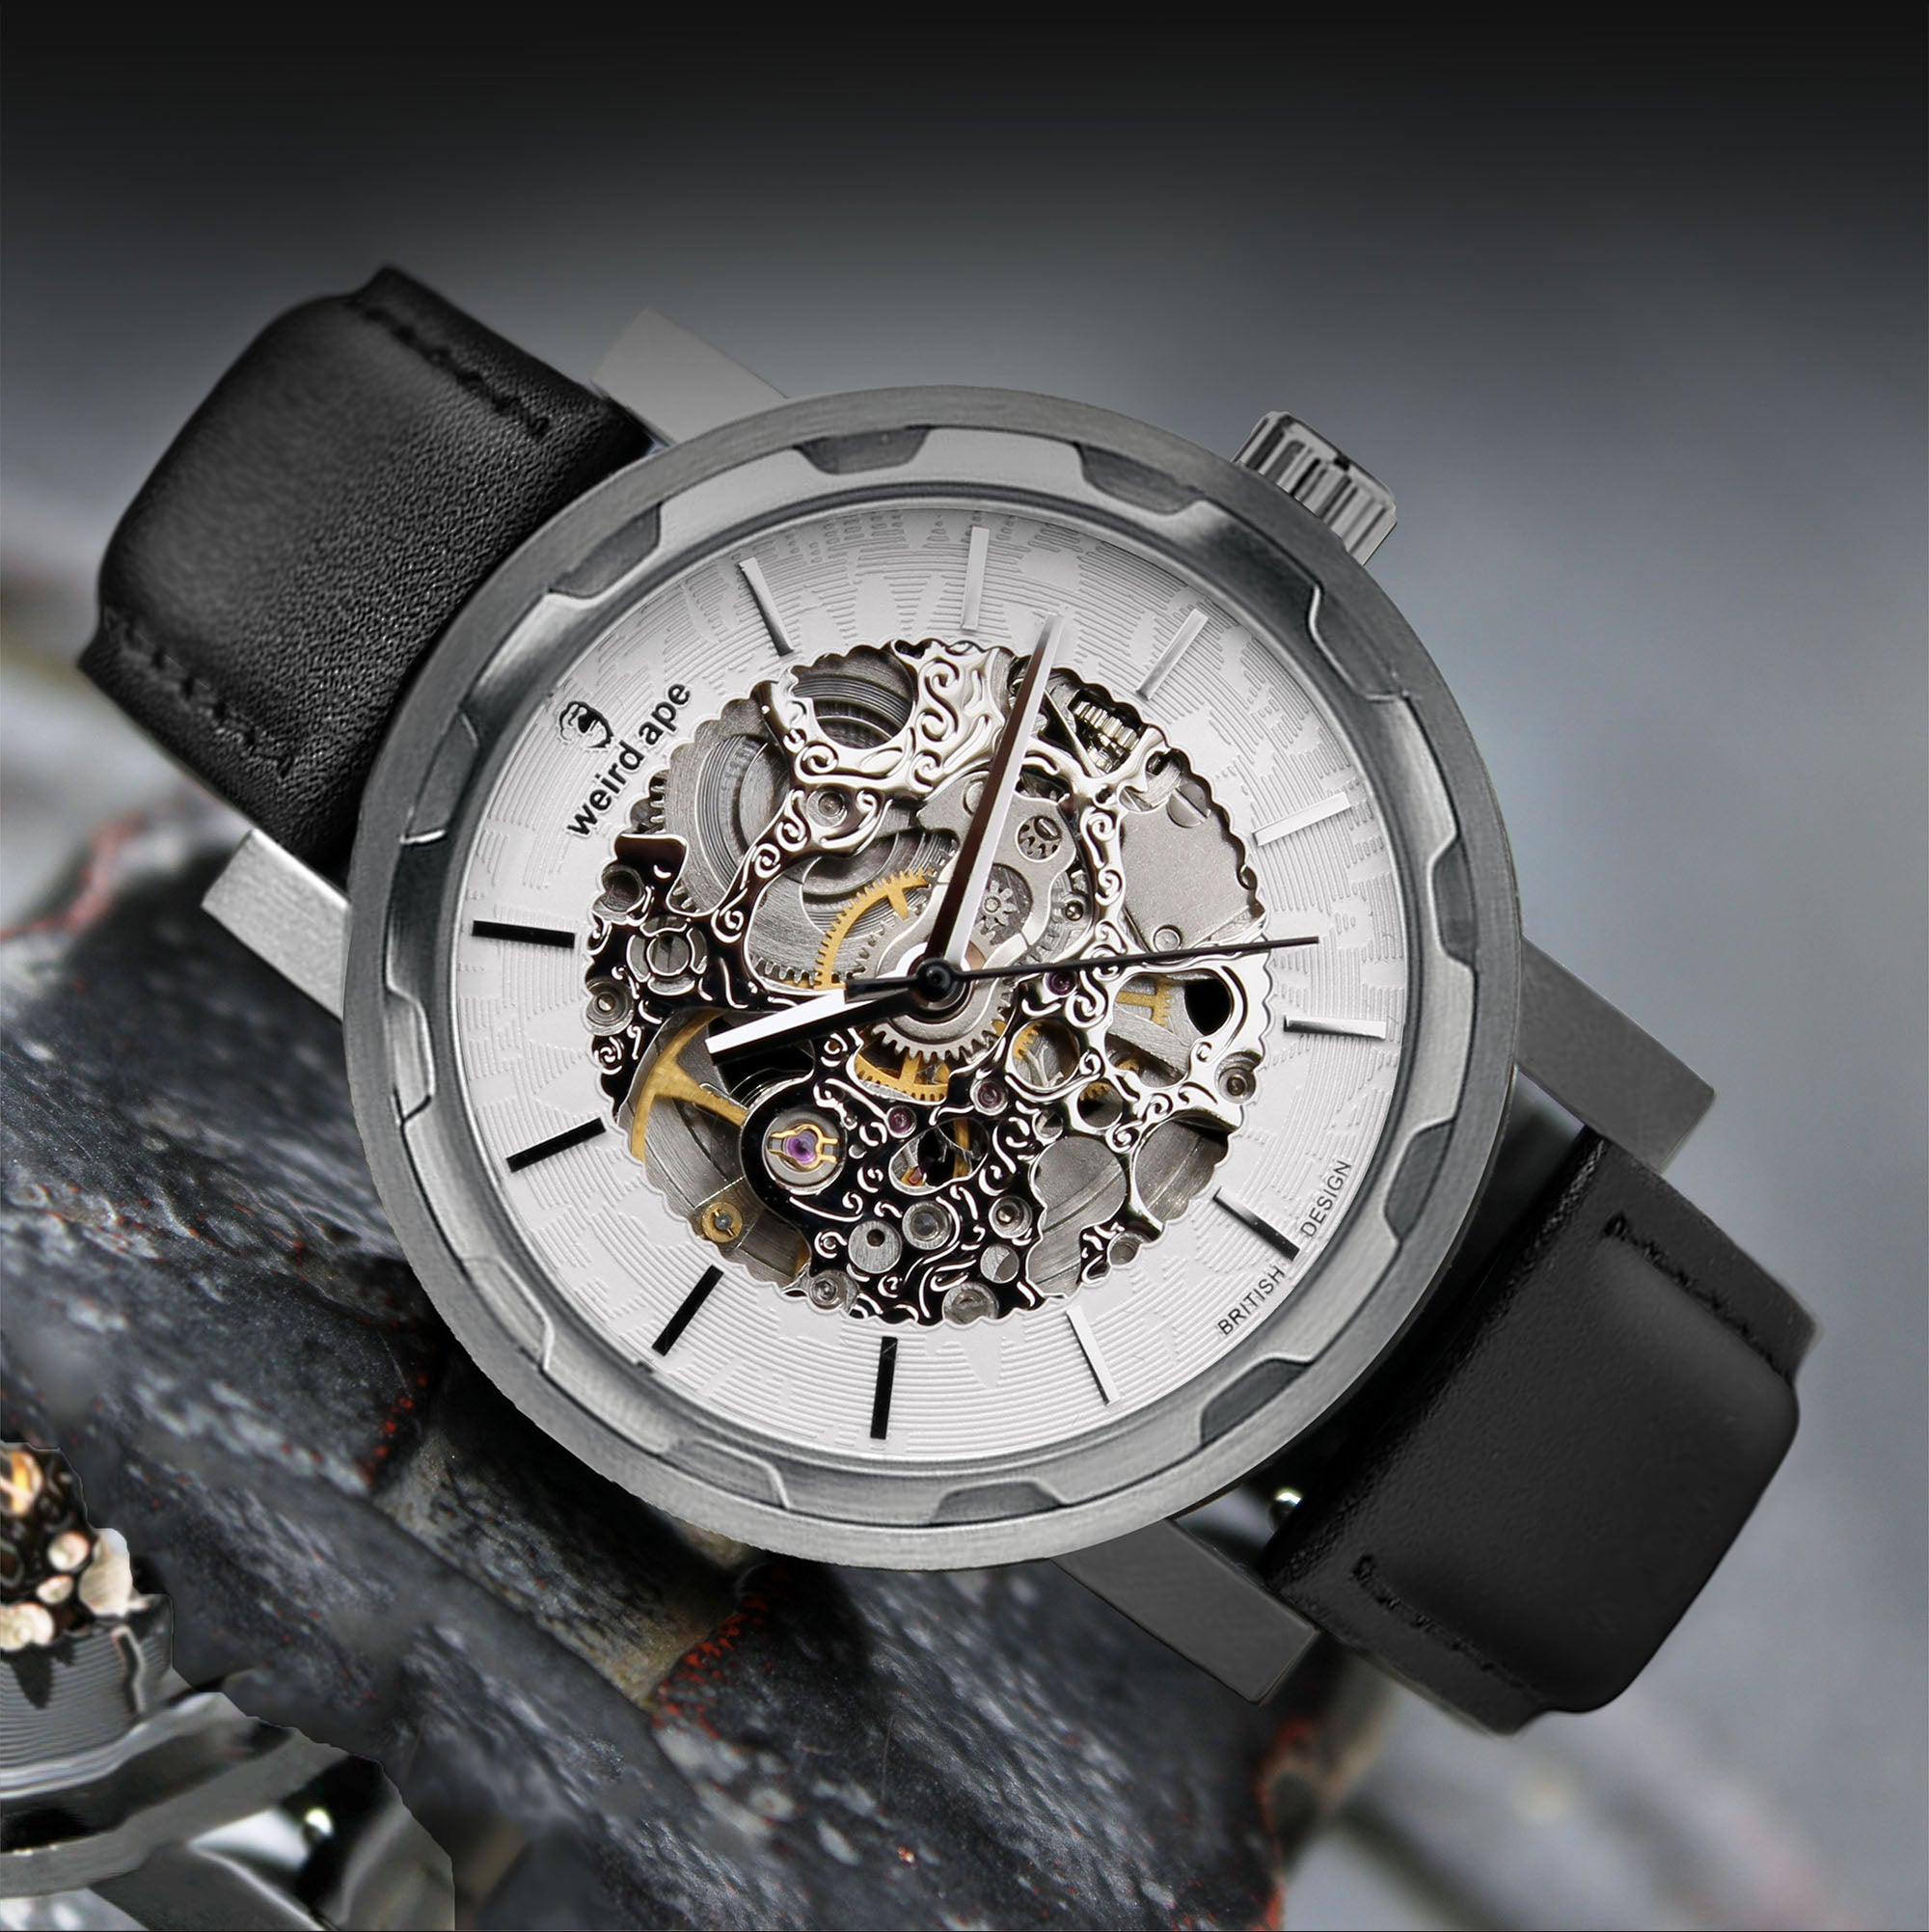 A picture of a silver mechanical watch with a leather black strap.